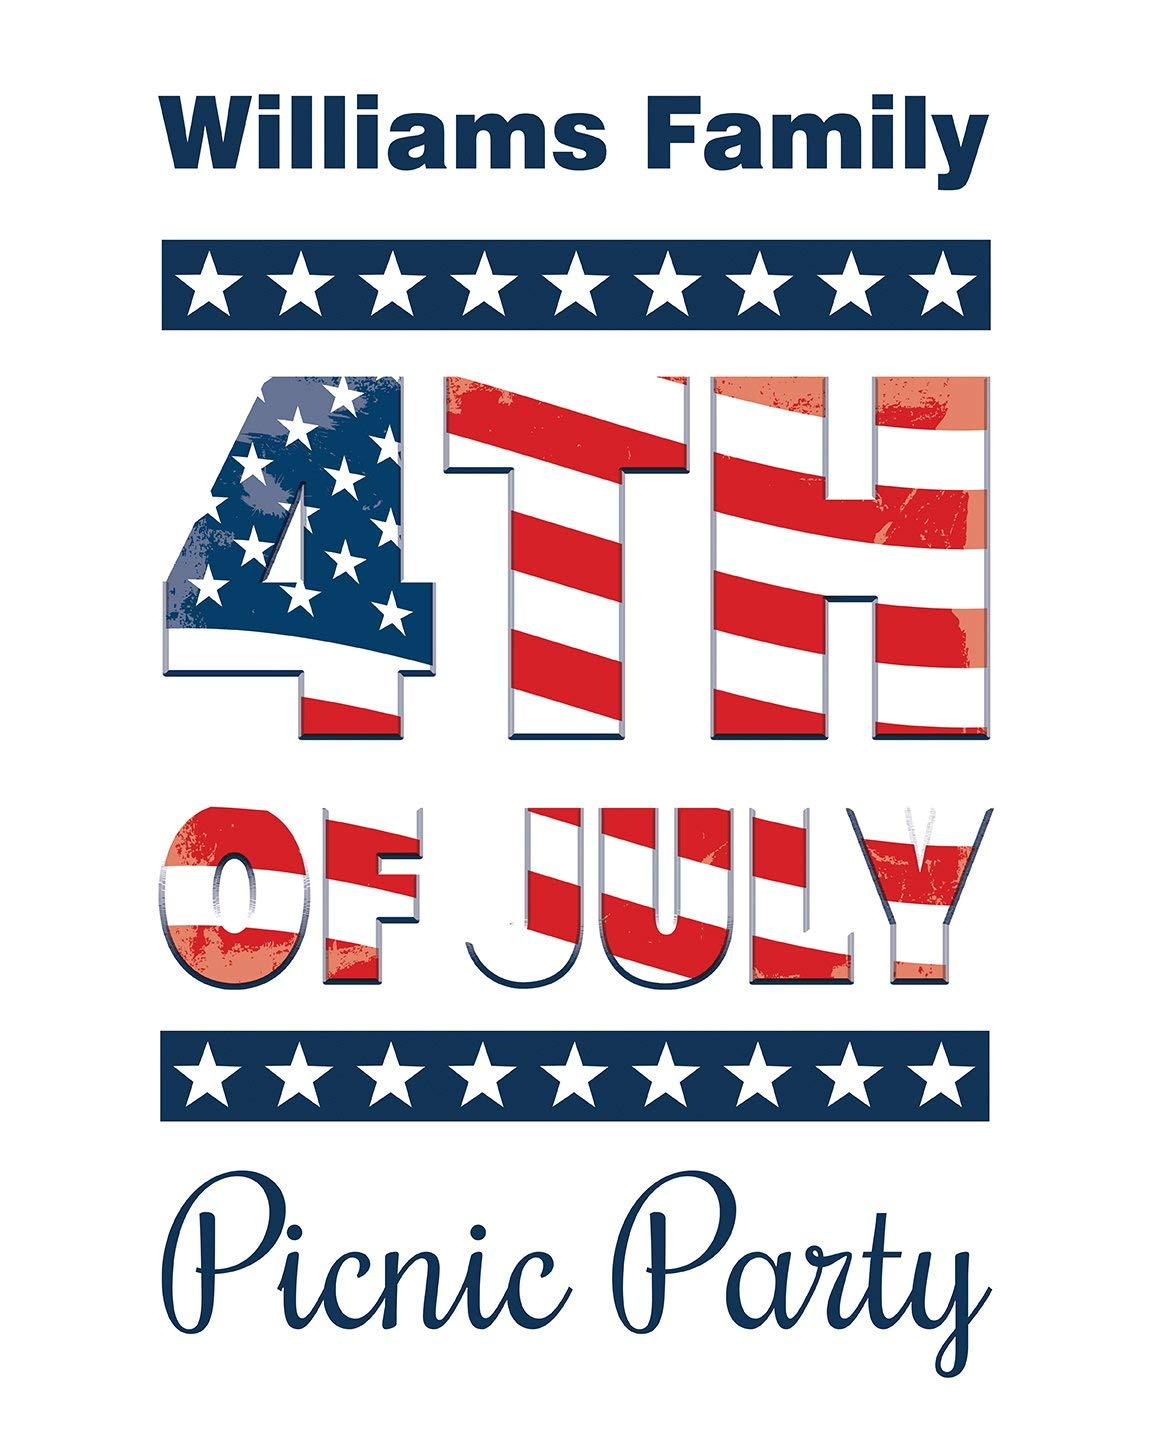 Family Reunion Shirt, 4th of July, Independence Day, Family Picnic Party, Independence Day T-Shirt, Custom America Shirt, American Flag Country Tee, Patriotic Shirt, America Theme Party, Custom Shirt